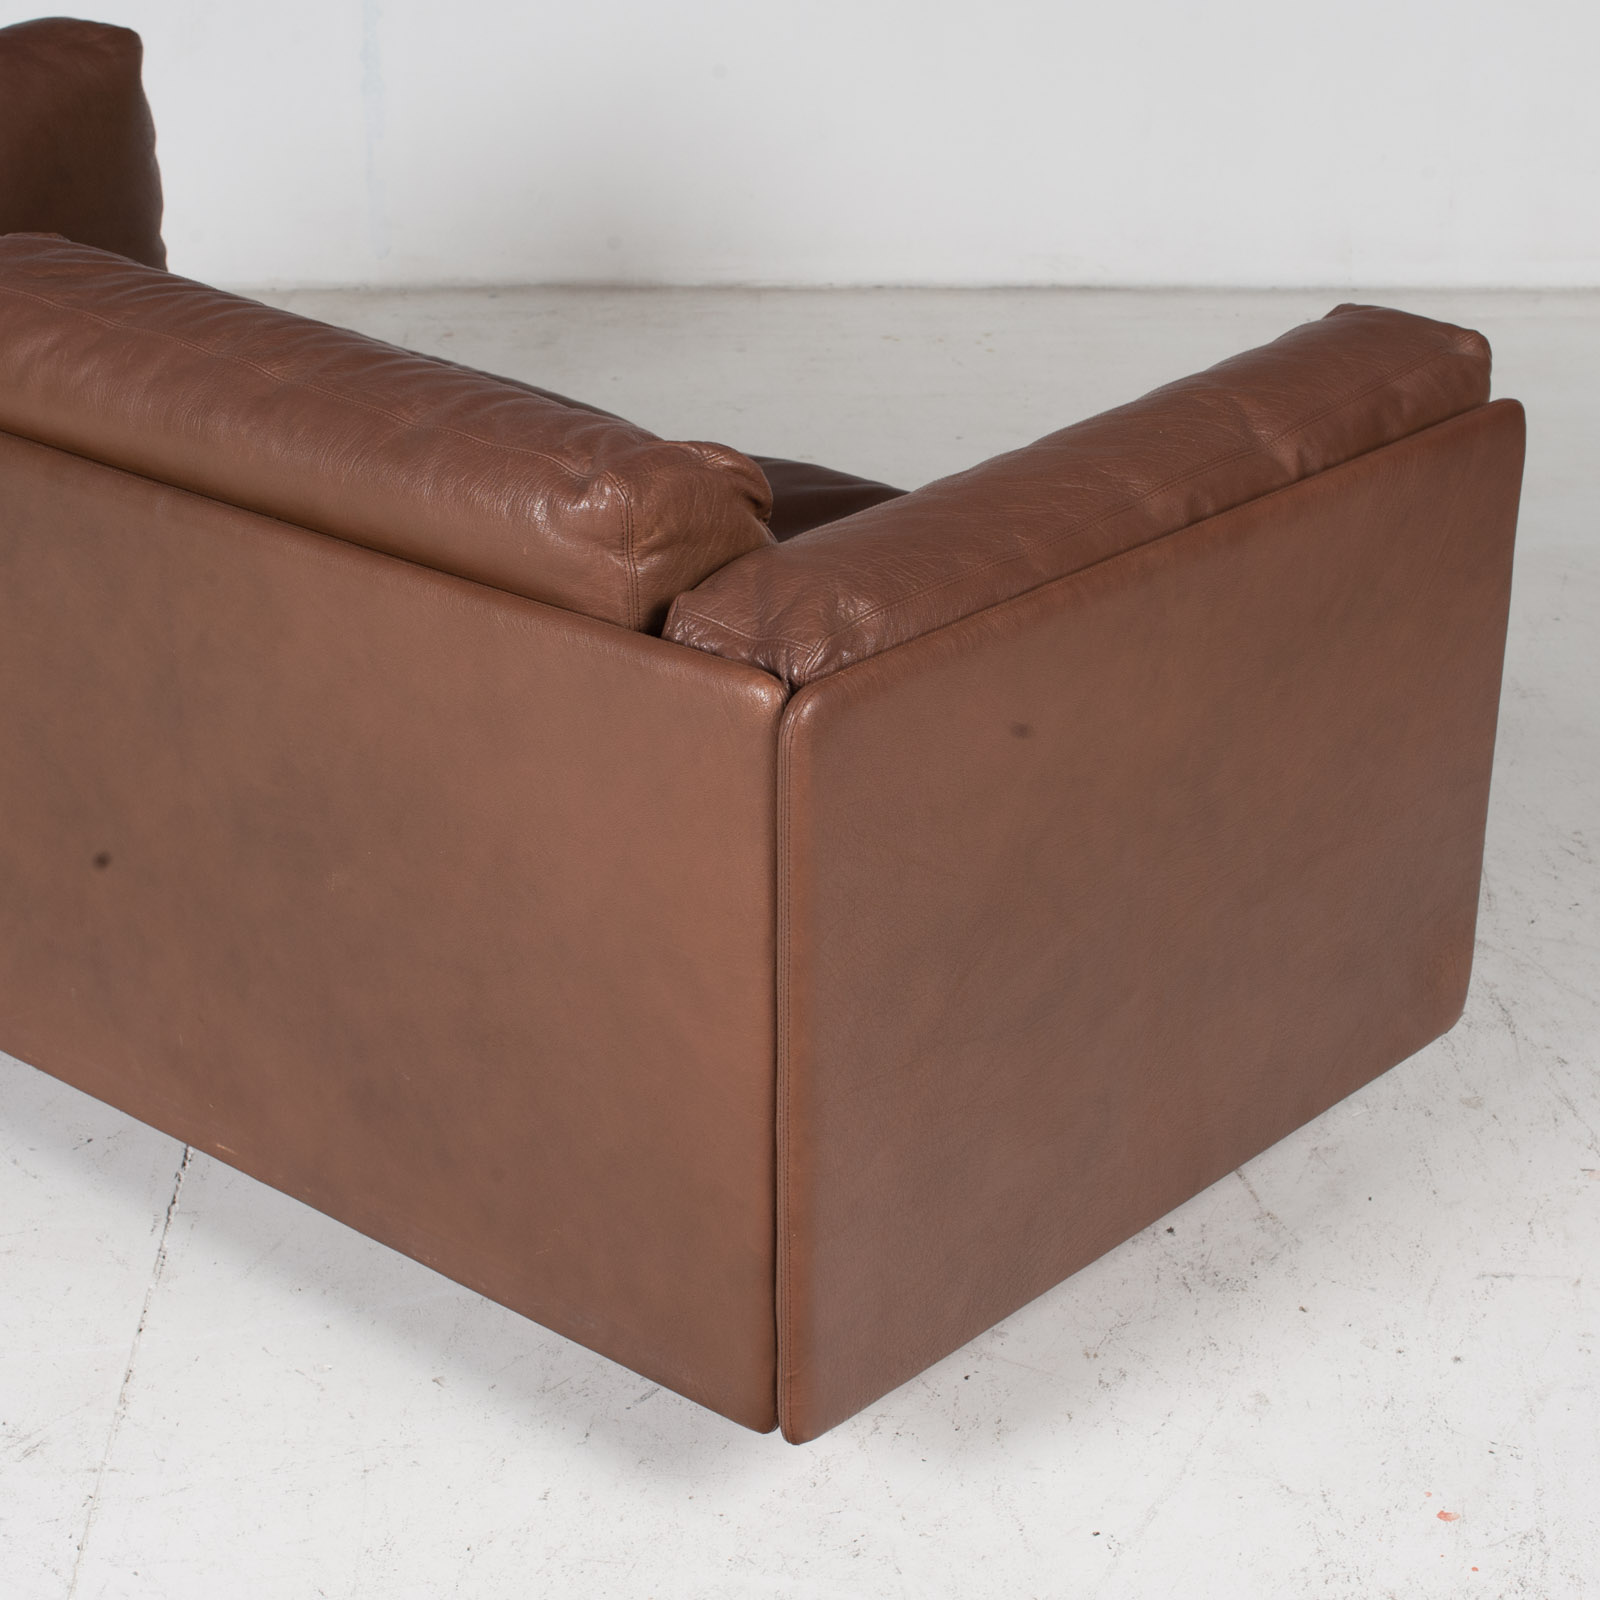 2 Seater Sofa In Brown Leather, 1960s, Switzerland 11